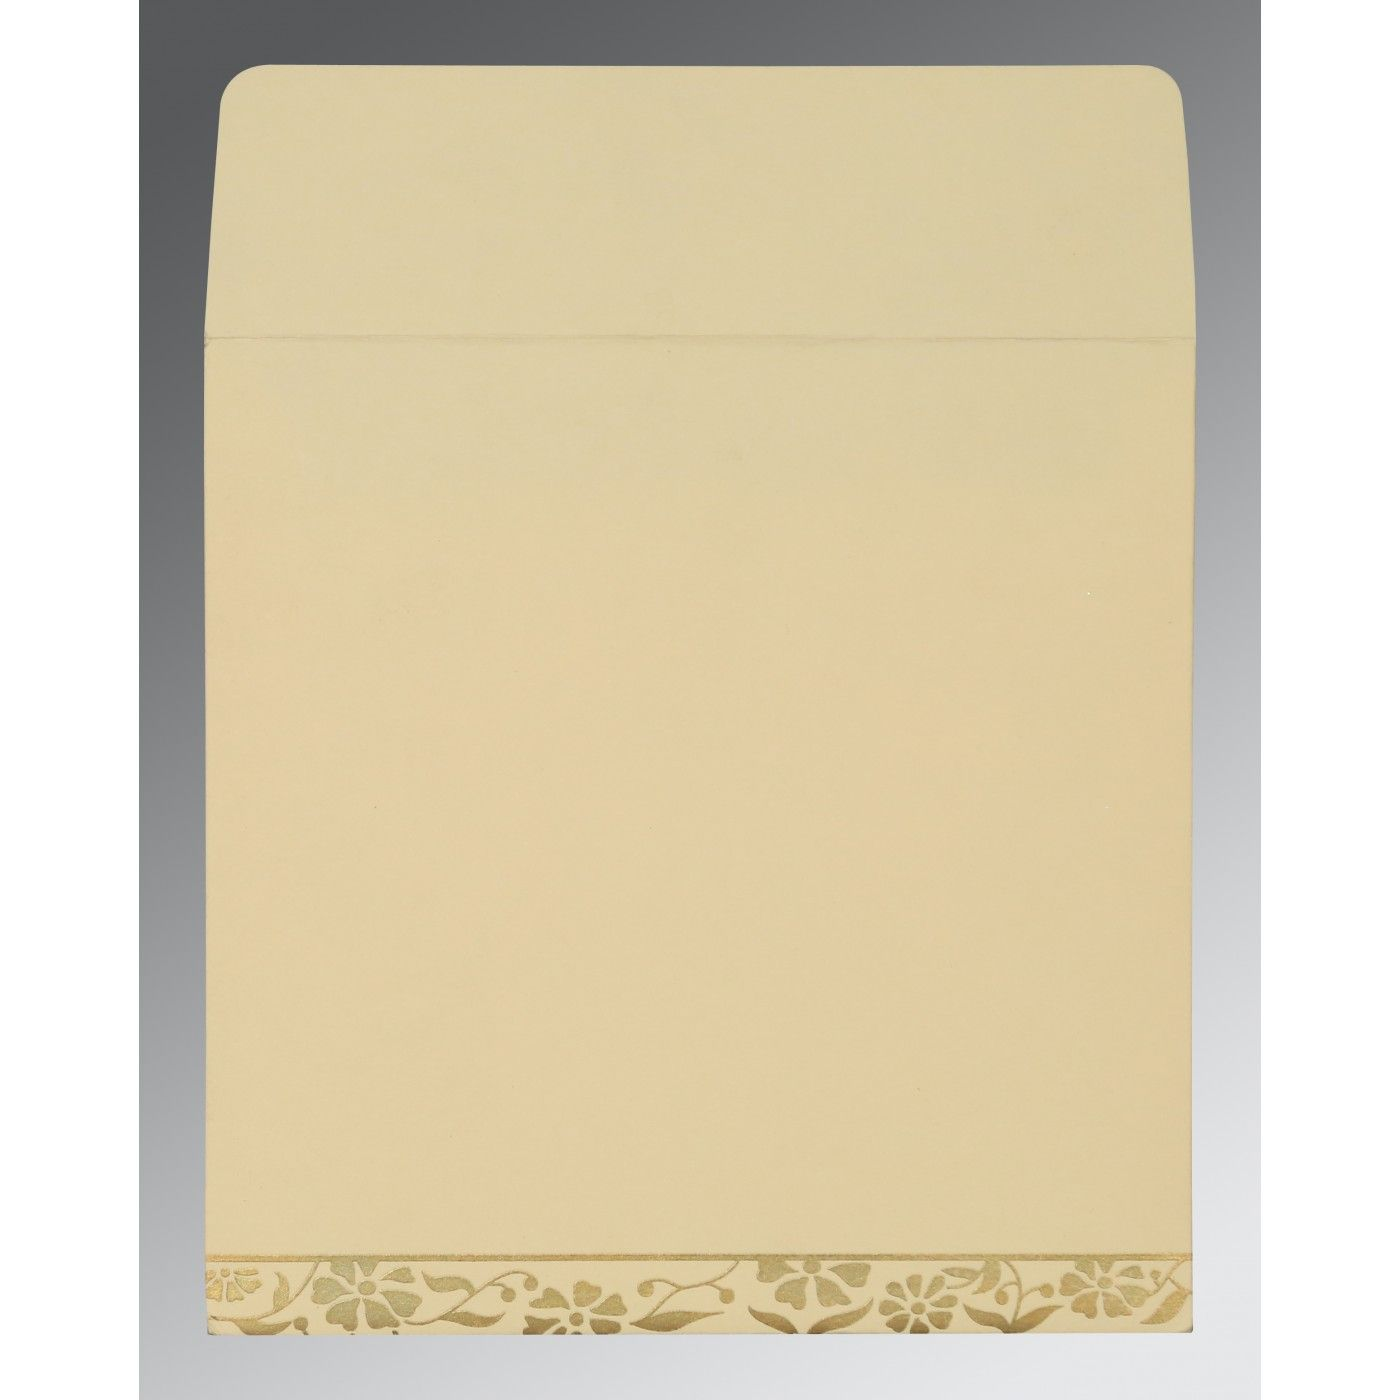 OFF-WHITE MATTE FLORAL THEMED - SCREEN PRINTED WEDDING CARD : CG-8222I - IndianWeddingCards